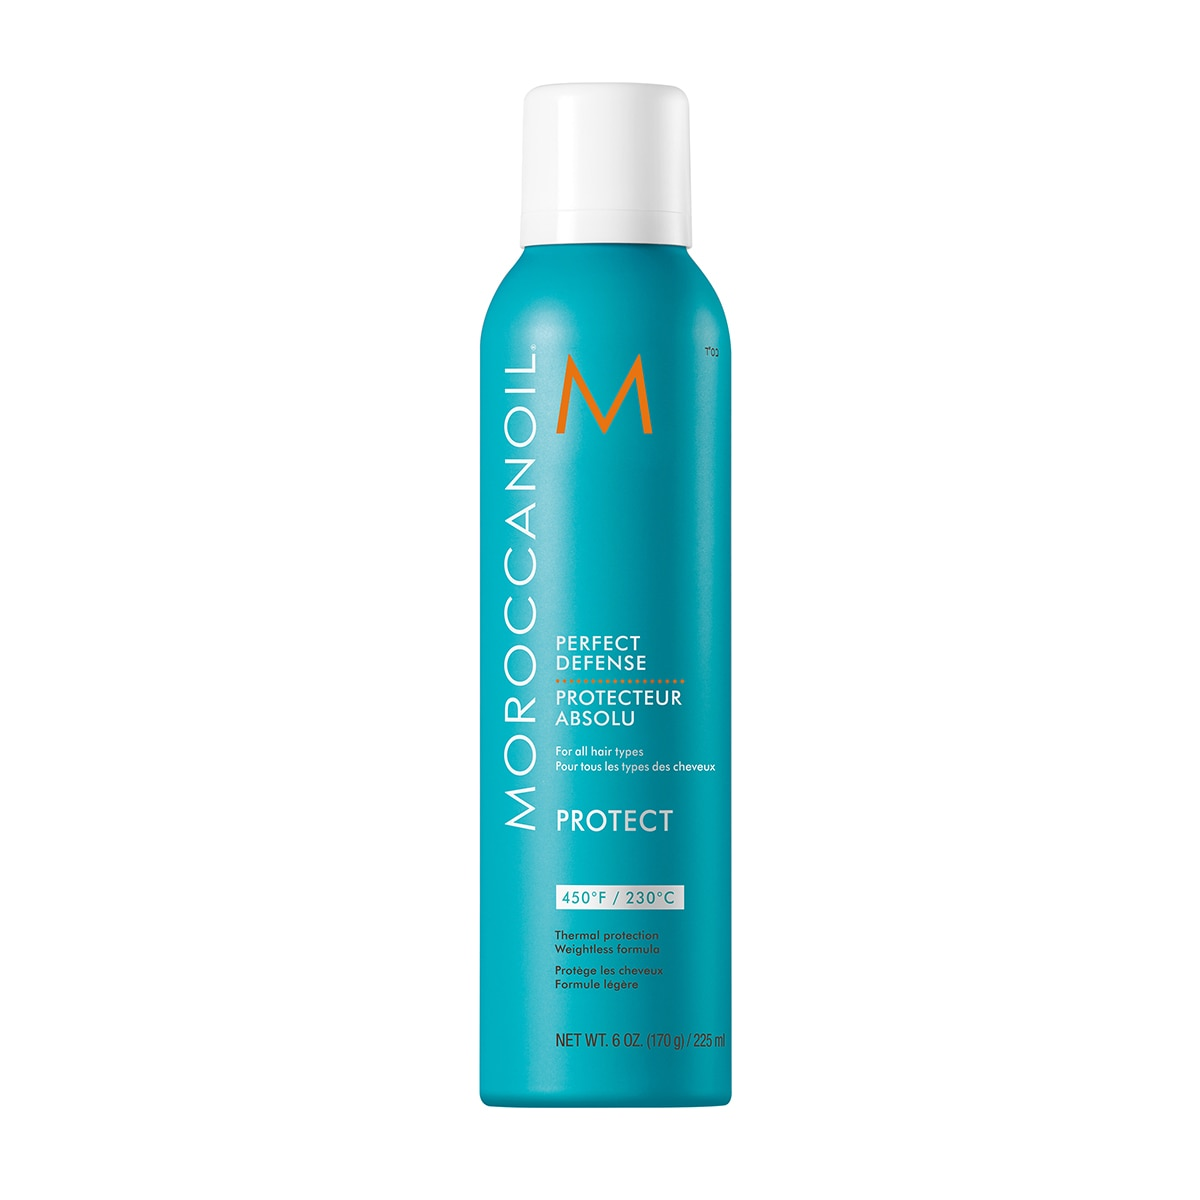 DEFENSA PERFECTA MOROCCANOIL®